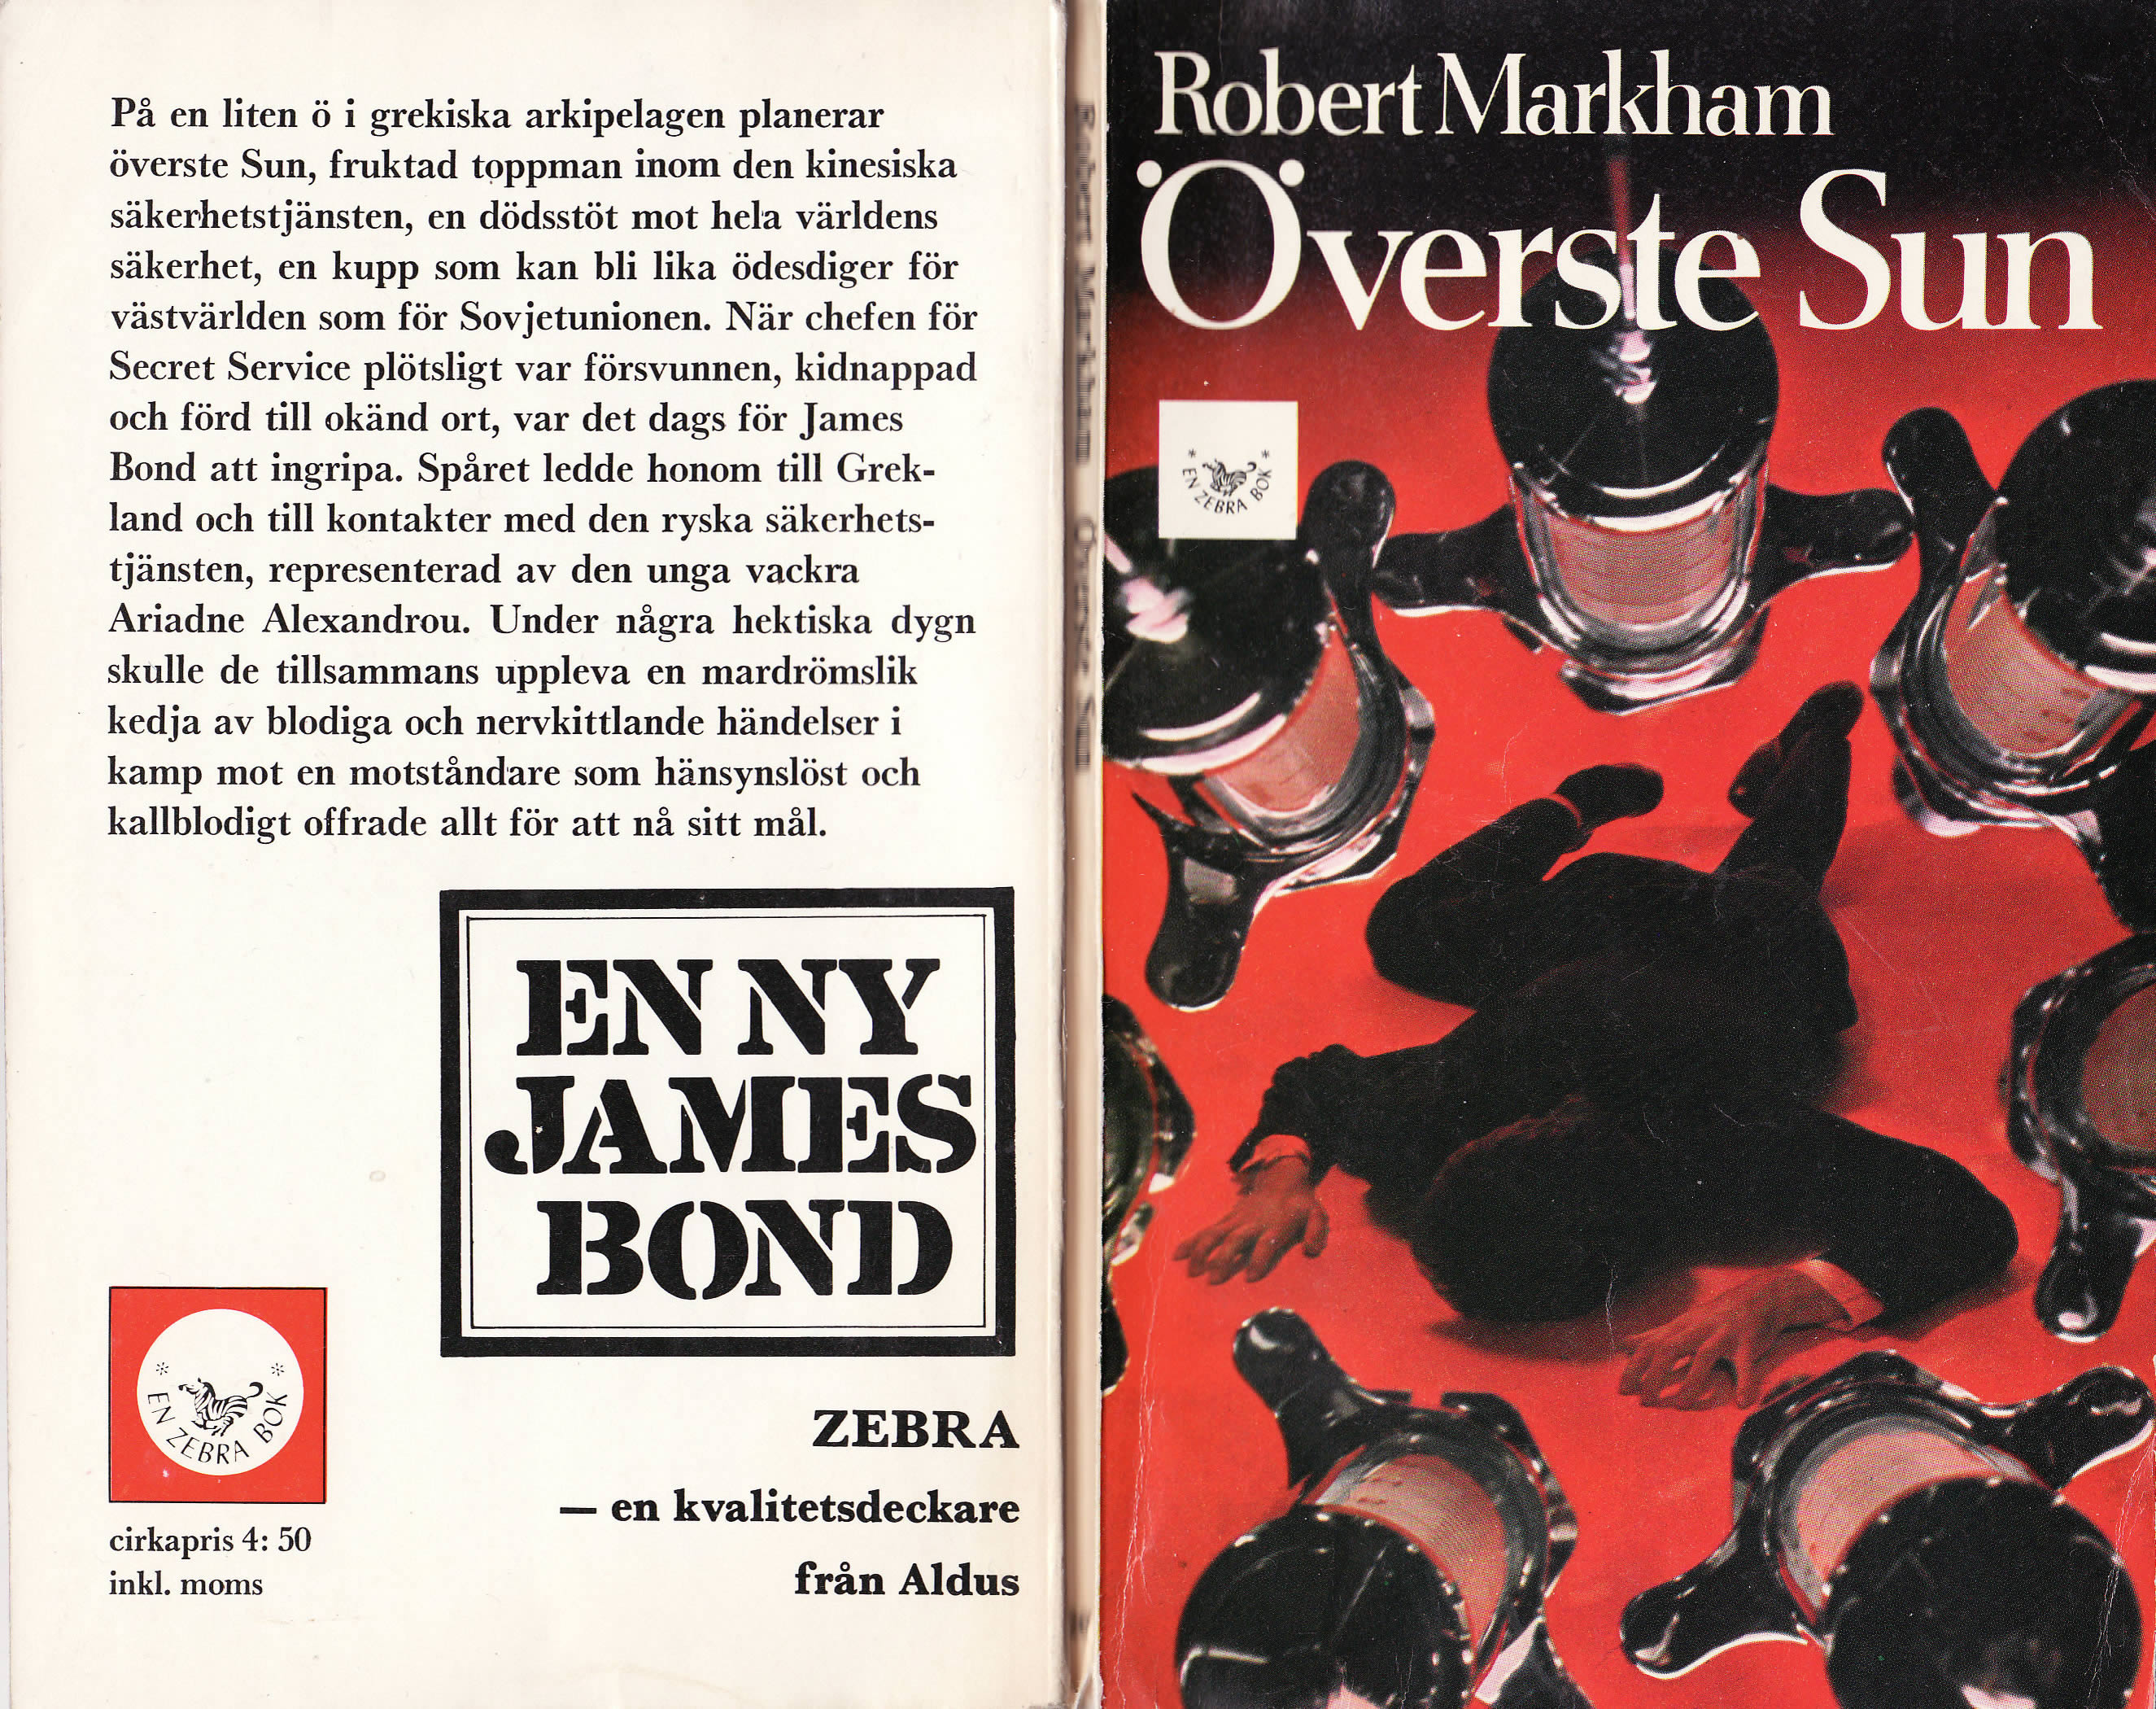 First edition UK hardcover of Colonel Sun (1968)